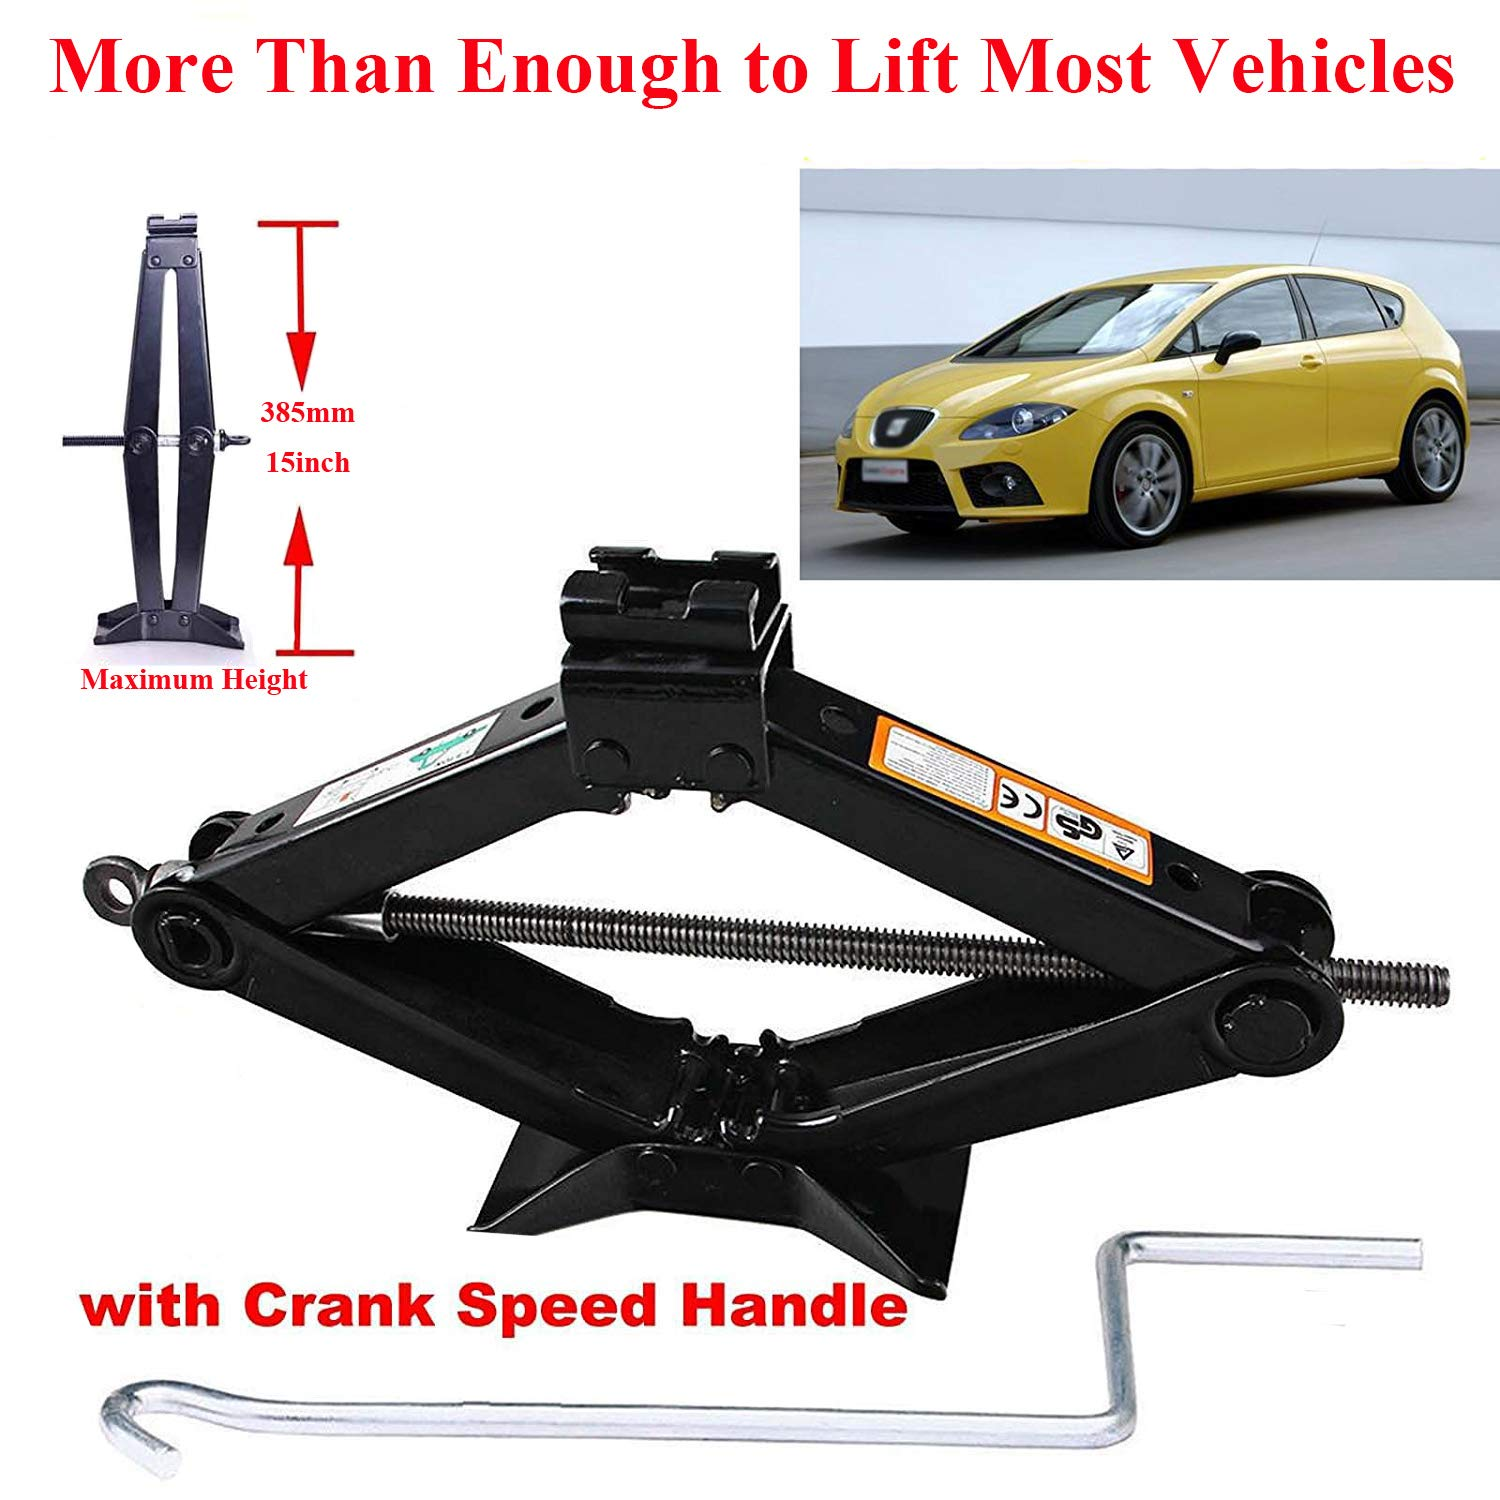 4.2-15 Inch //for Audi A3 A4 A5 Q3 Cars 2 Tonne Rustproof Car Scissor Floor Lift Car Jacks with Speed Chromed Crank Handle for Vauxhall//Corsa//Astra//Zafira//Insignia//Meriva Solid Steel Rust-Proof